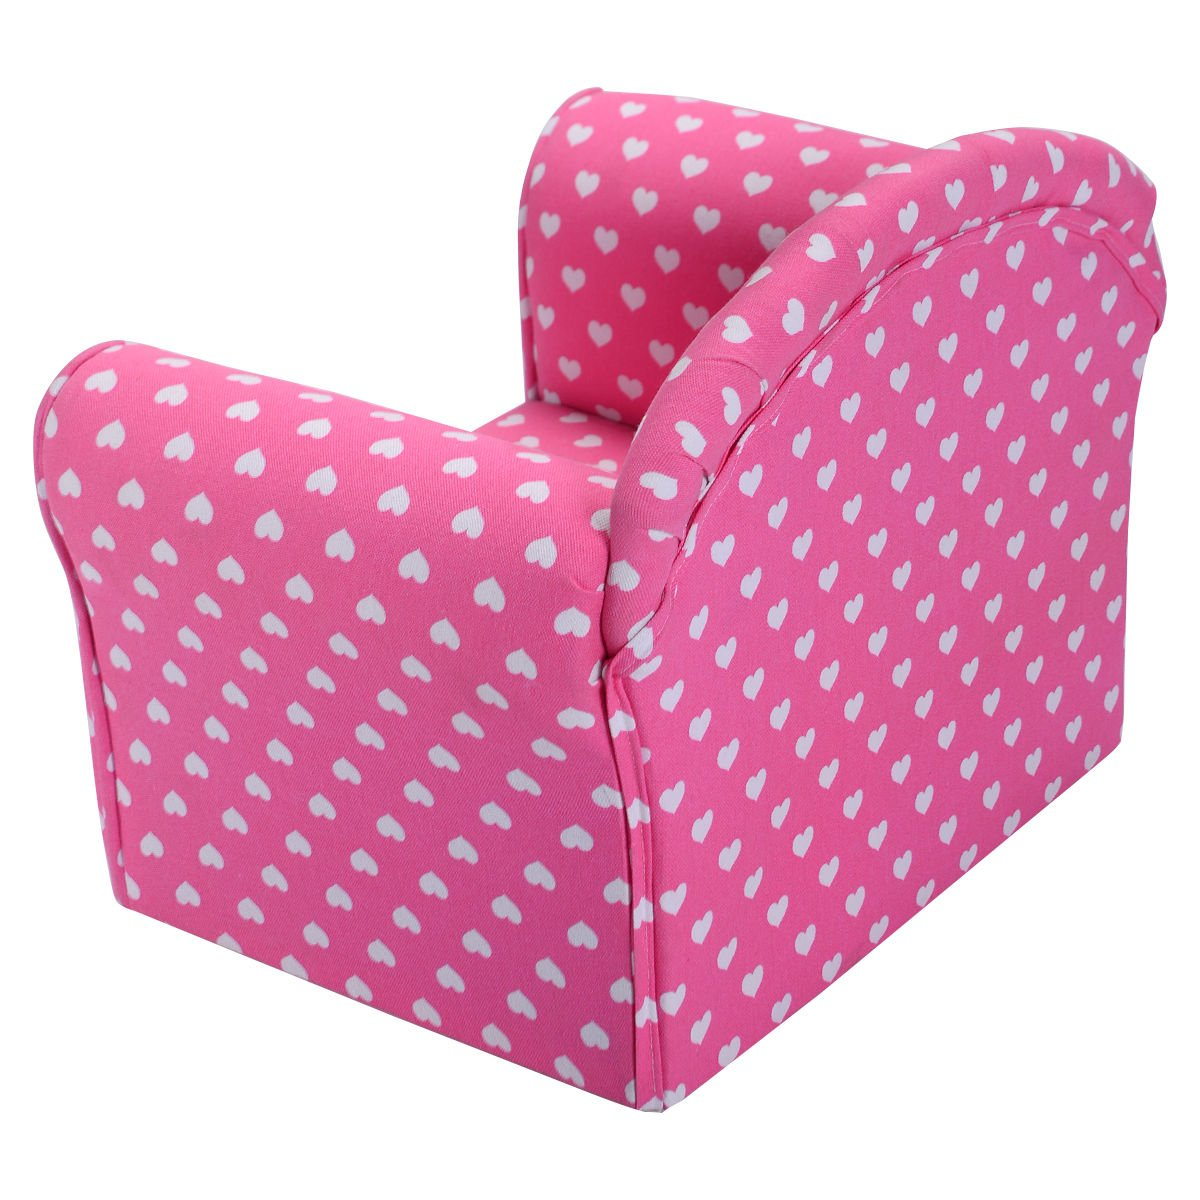 Amazon.com: Costzon Kids Sofa Armrest Chair Couch Children Living Room  Toddler Furniture (pink): Kitchen U0026 Dining